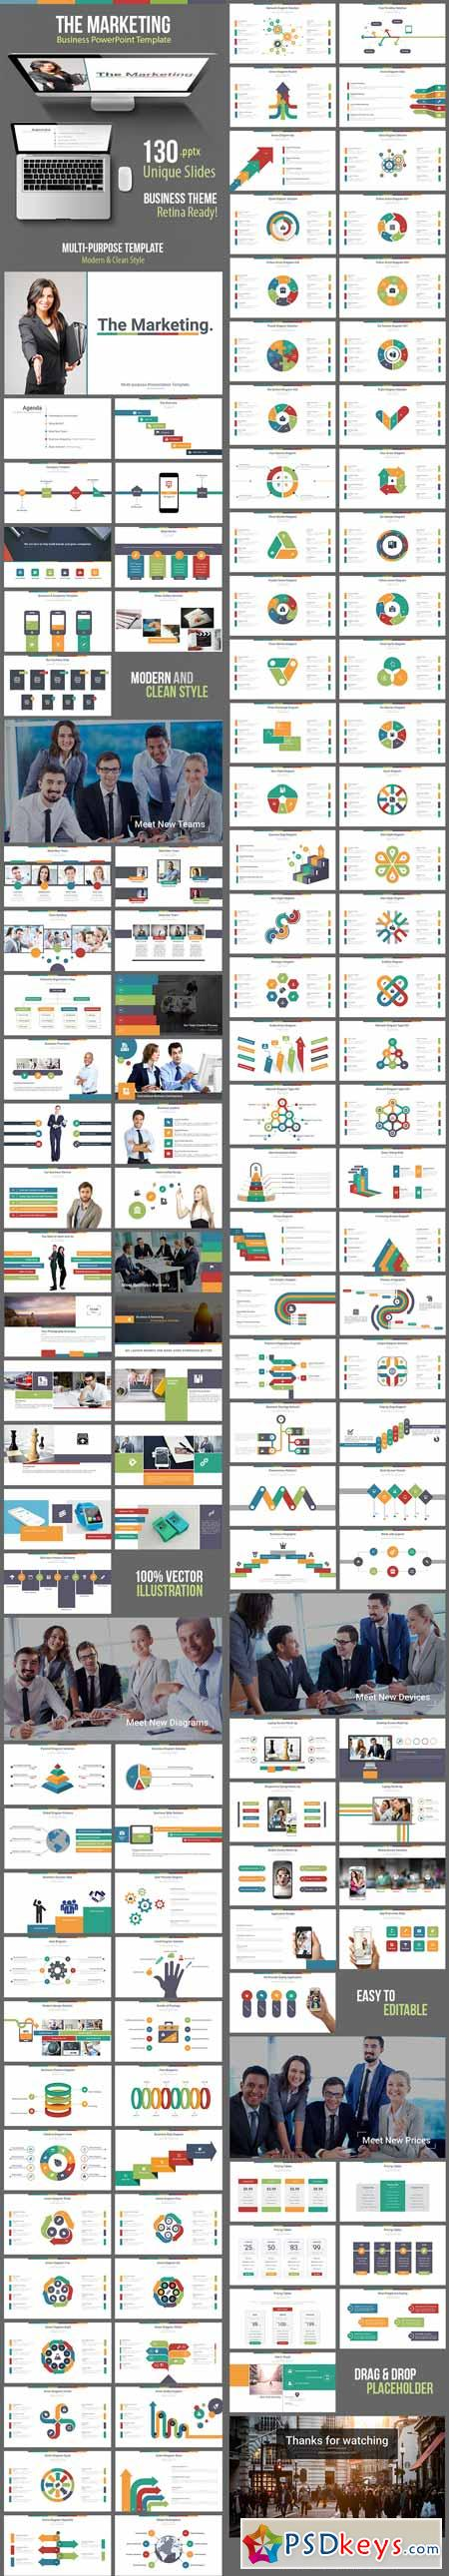 The Marketing - Business Powerpoint Template 11740170